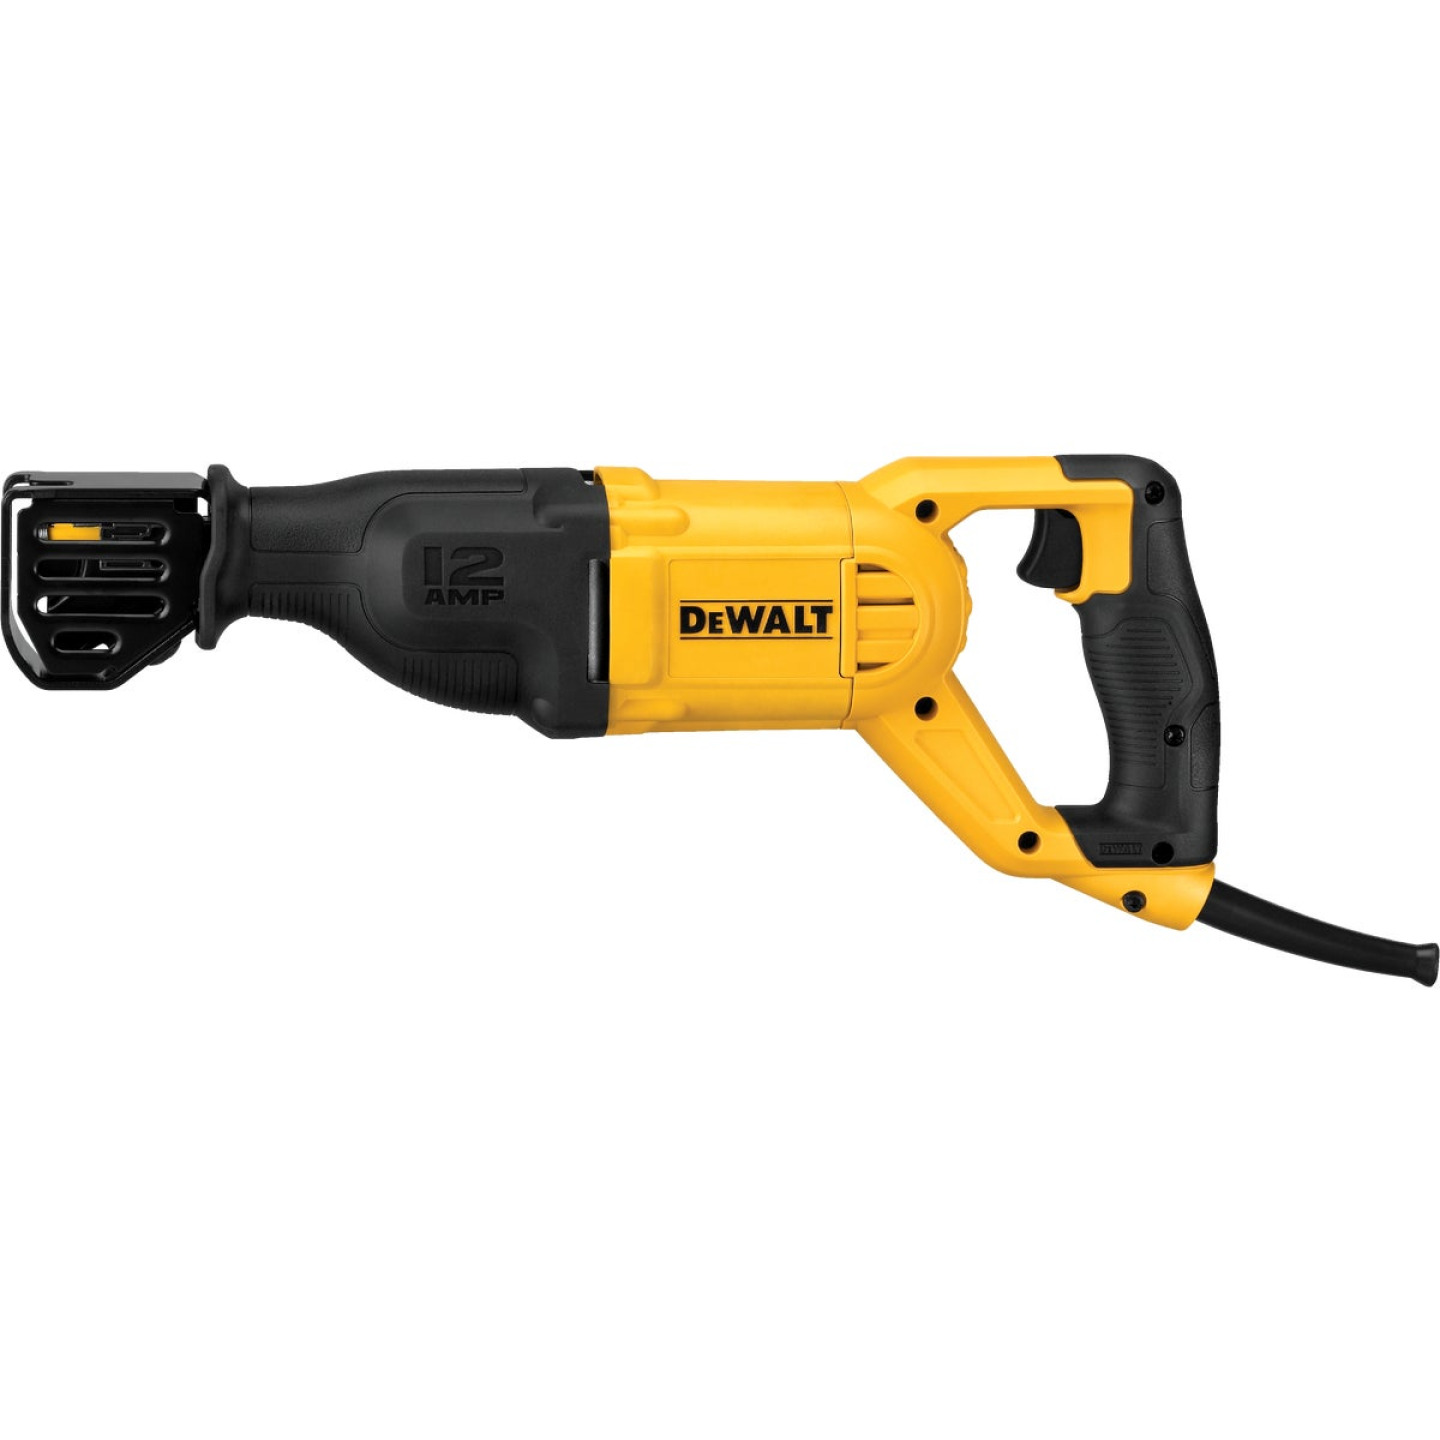 DeWalt 12-Amp Reciprocating Saw Image 8